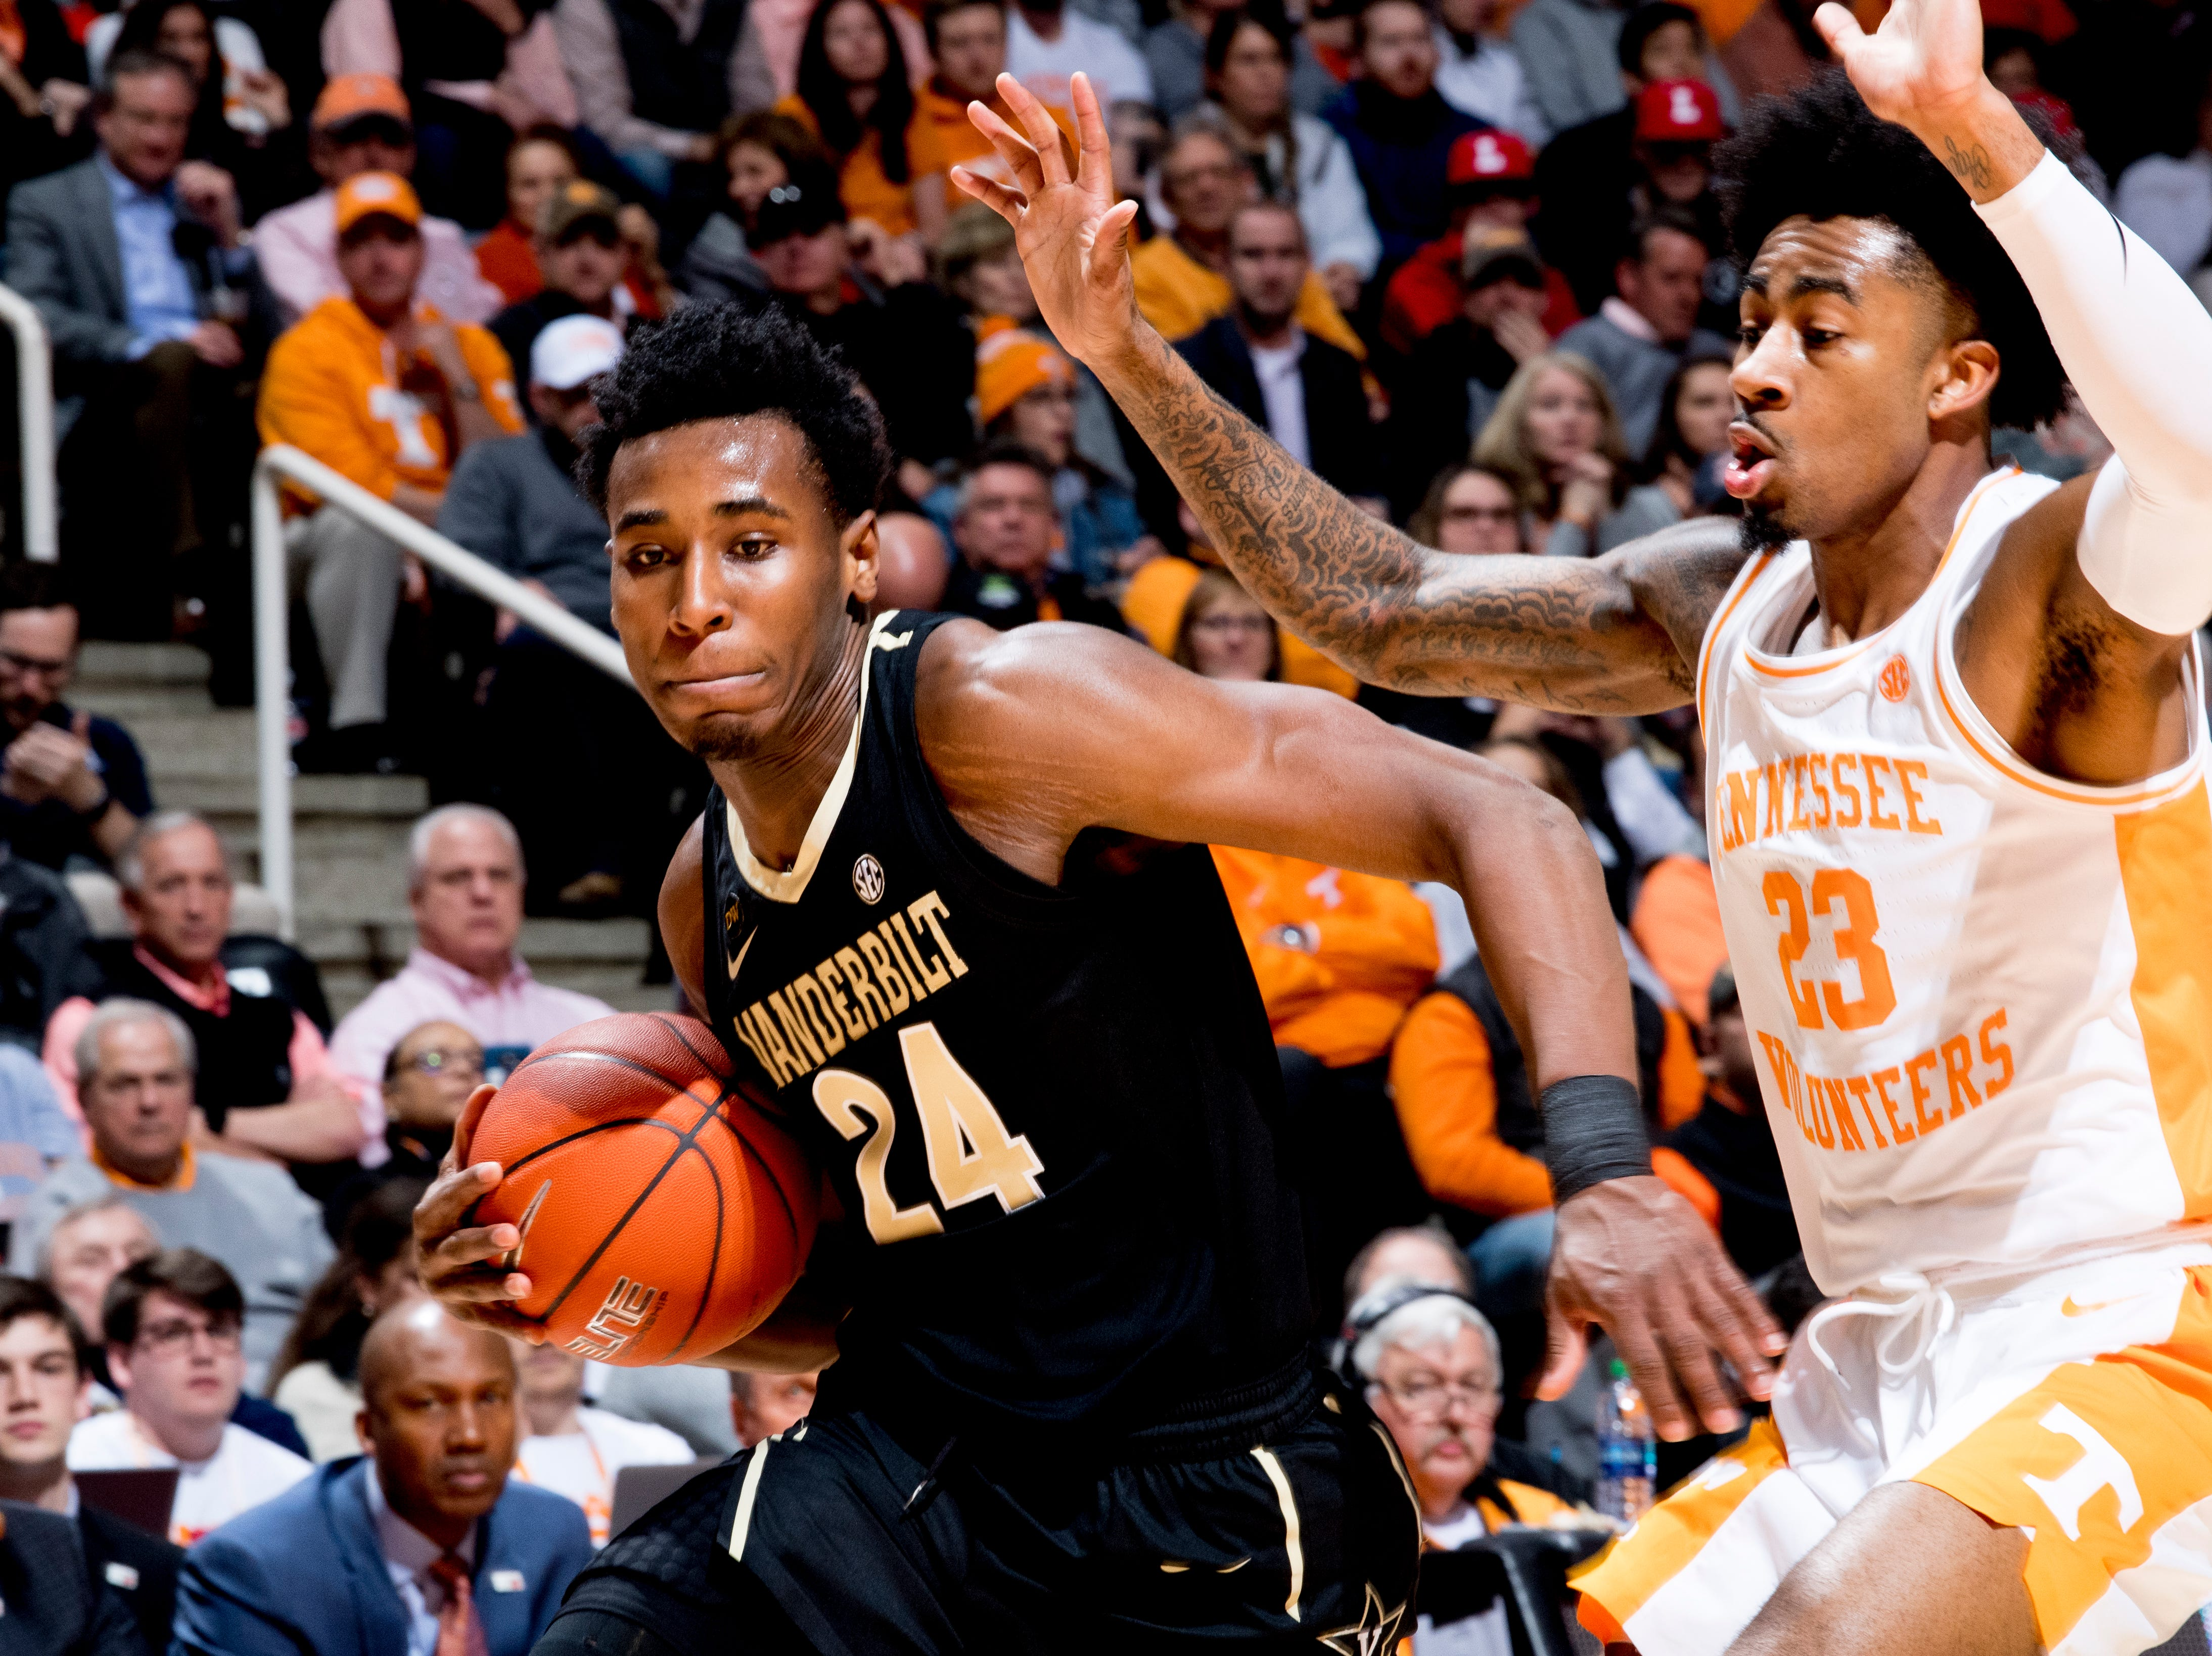 Vanderbilt forward Aaron Nesmith (24) dribbles around Tennessee guard Jordan Bowden (23) during a game between Tennessee and Vanderbilt at Thompson-Boling Arena in Knoxville, Tennessee on Tuesday, February 19, 2019.